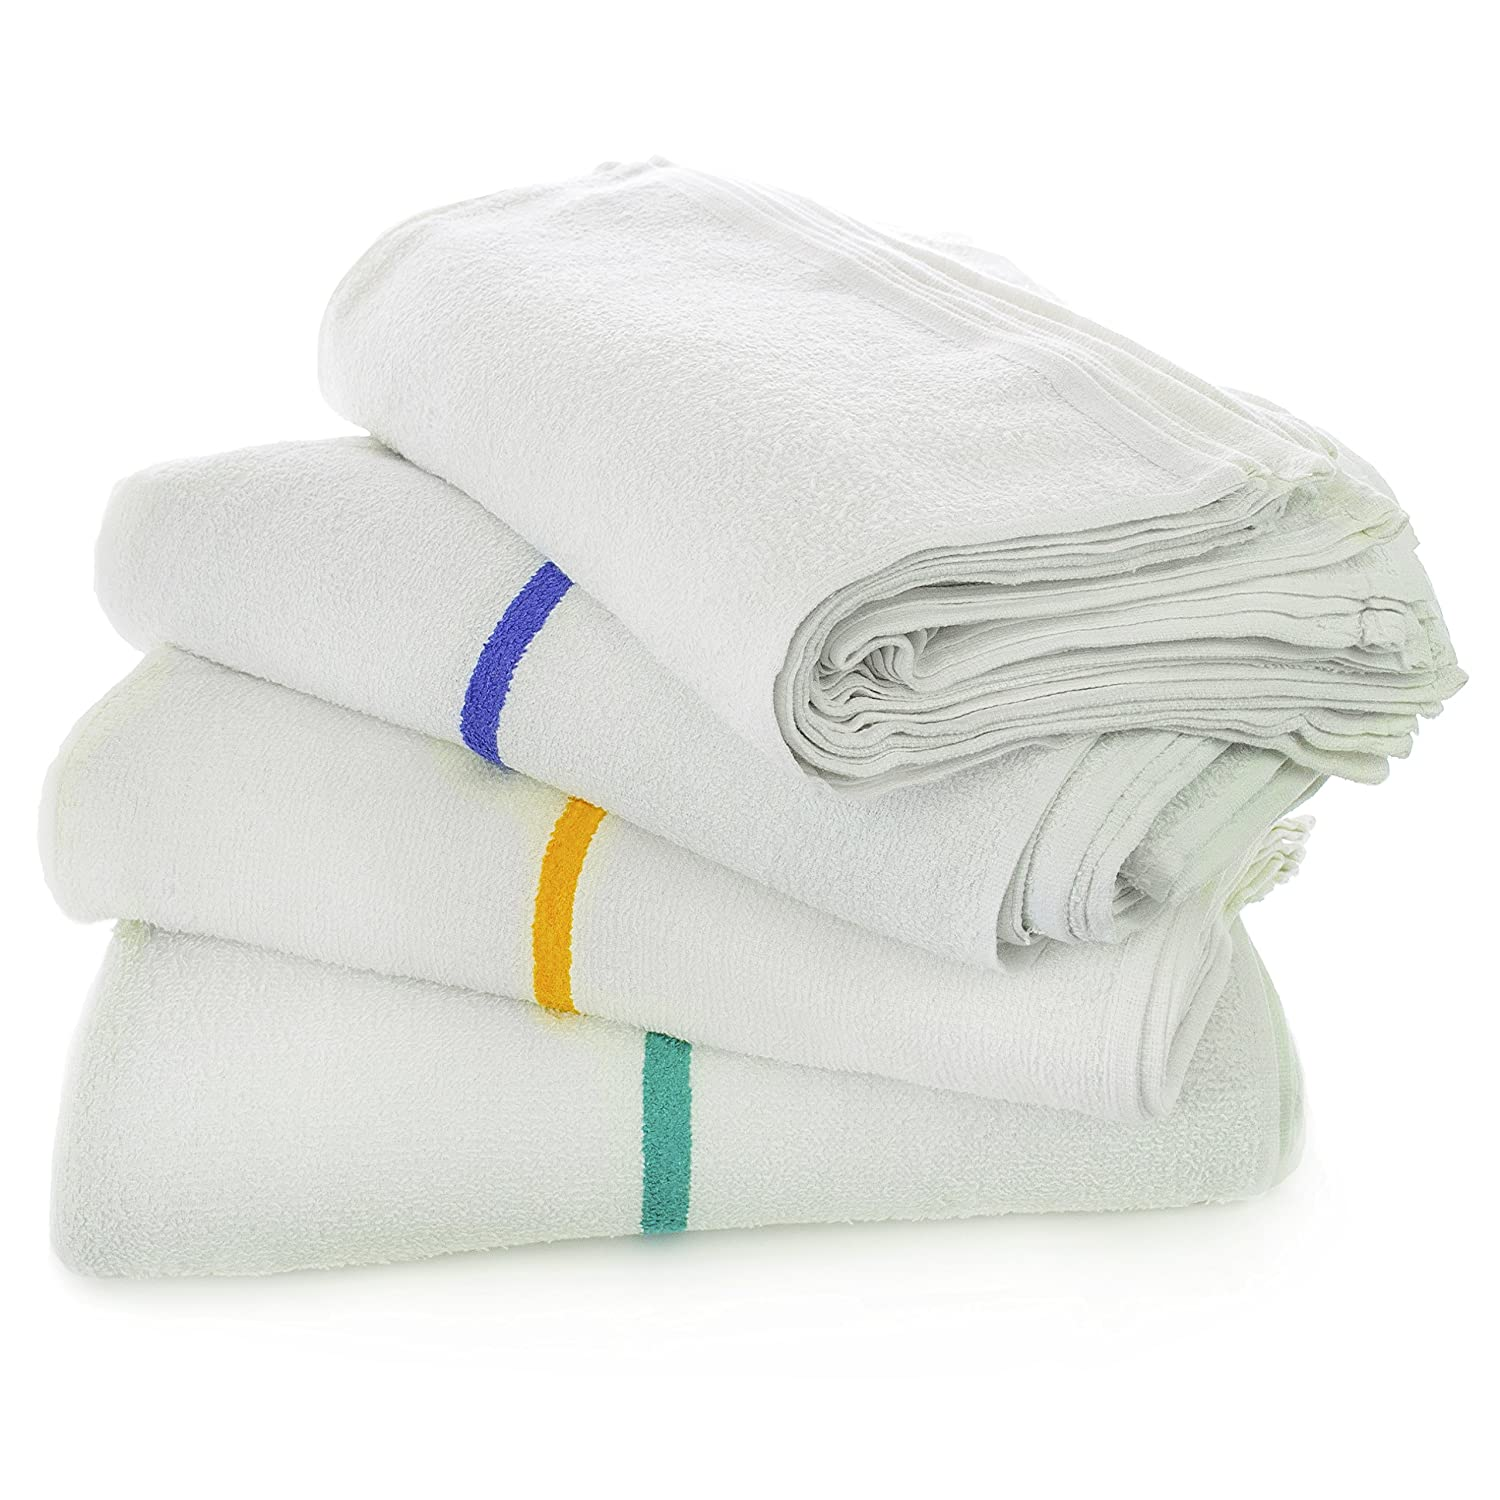 Kitchen All-purpose Bar Mop Towels, Cotton, Professional Grade for Home Kitchen or Restaurant Use - 24-pack - White (16